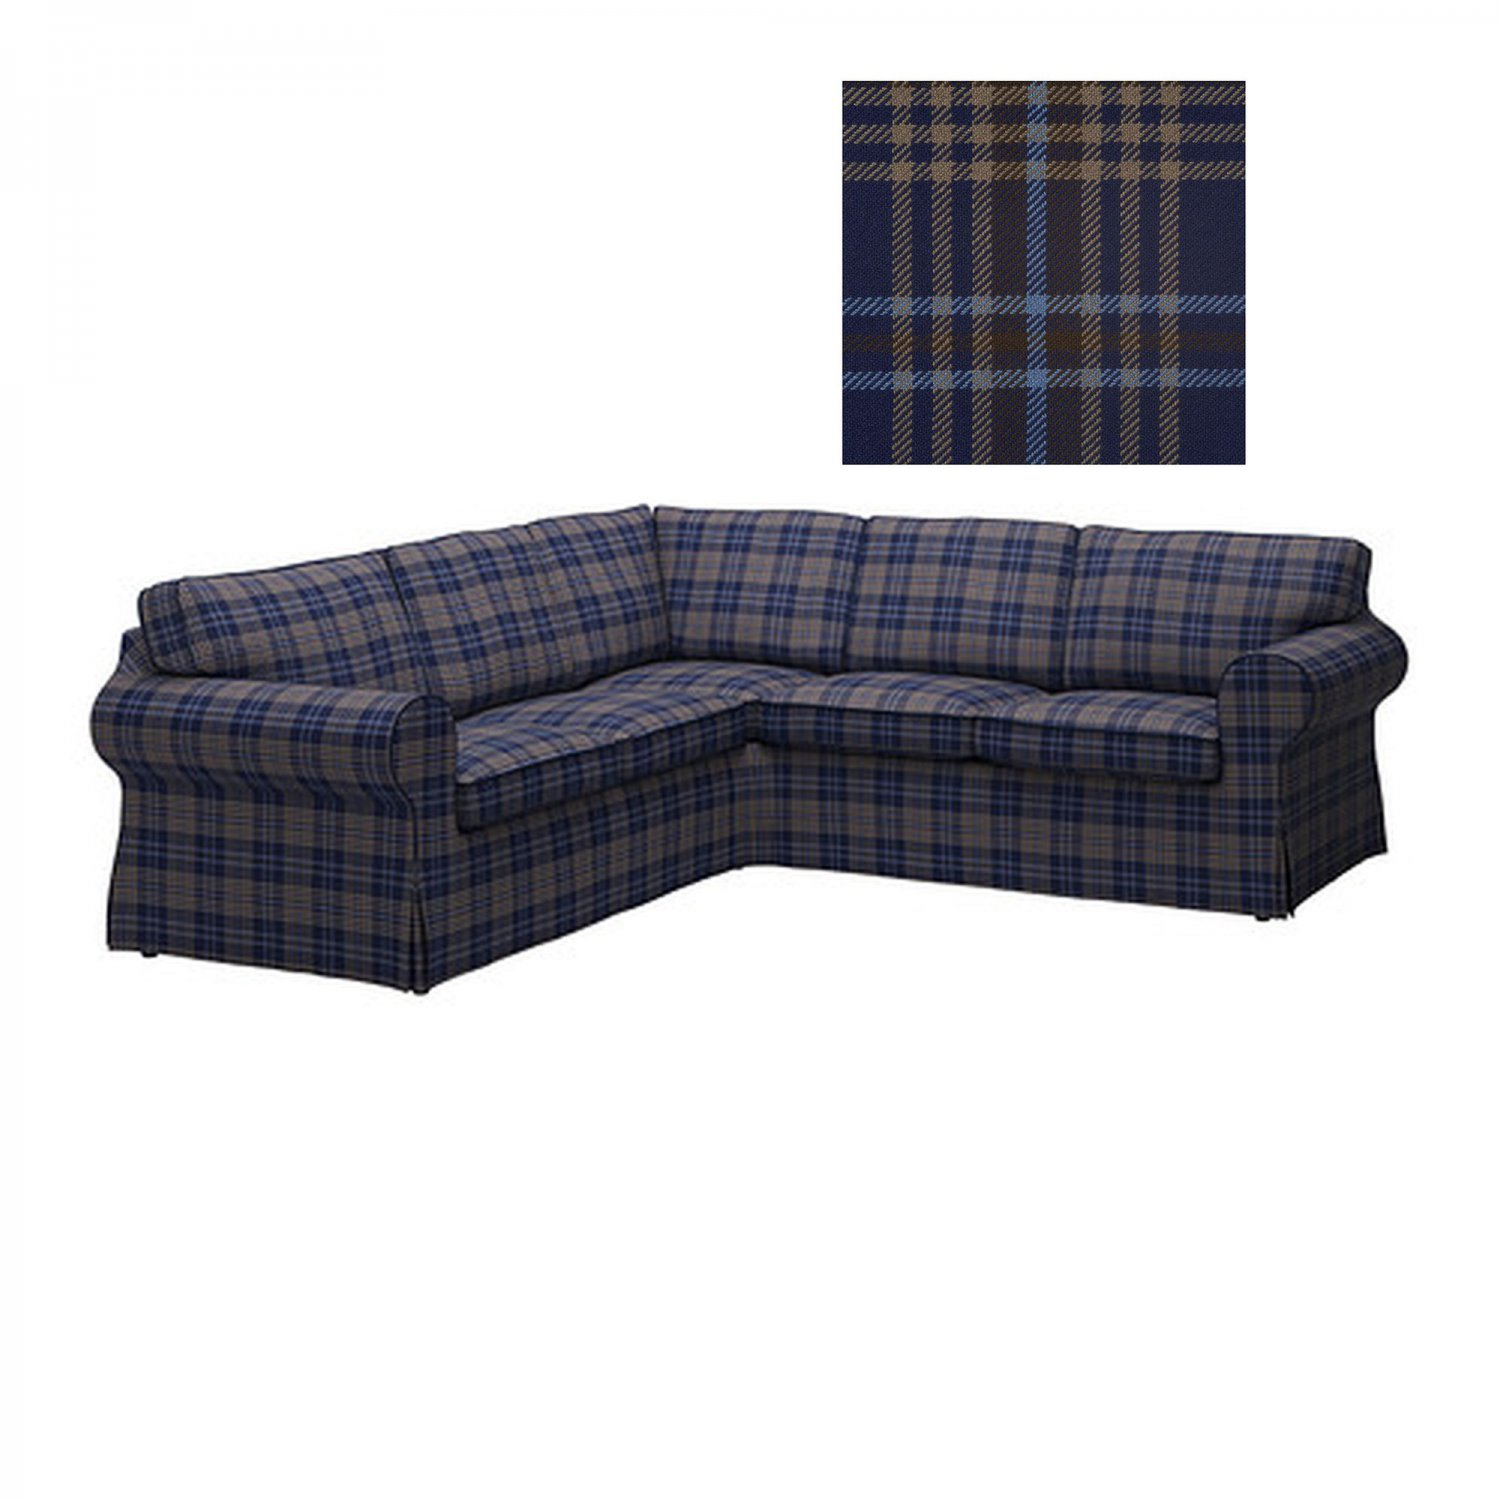 Ikea EKTORP 2 2 Corner Sofa COVER Slipcover RUTNA MULTI Blue Plaid